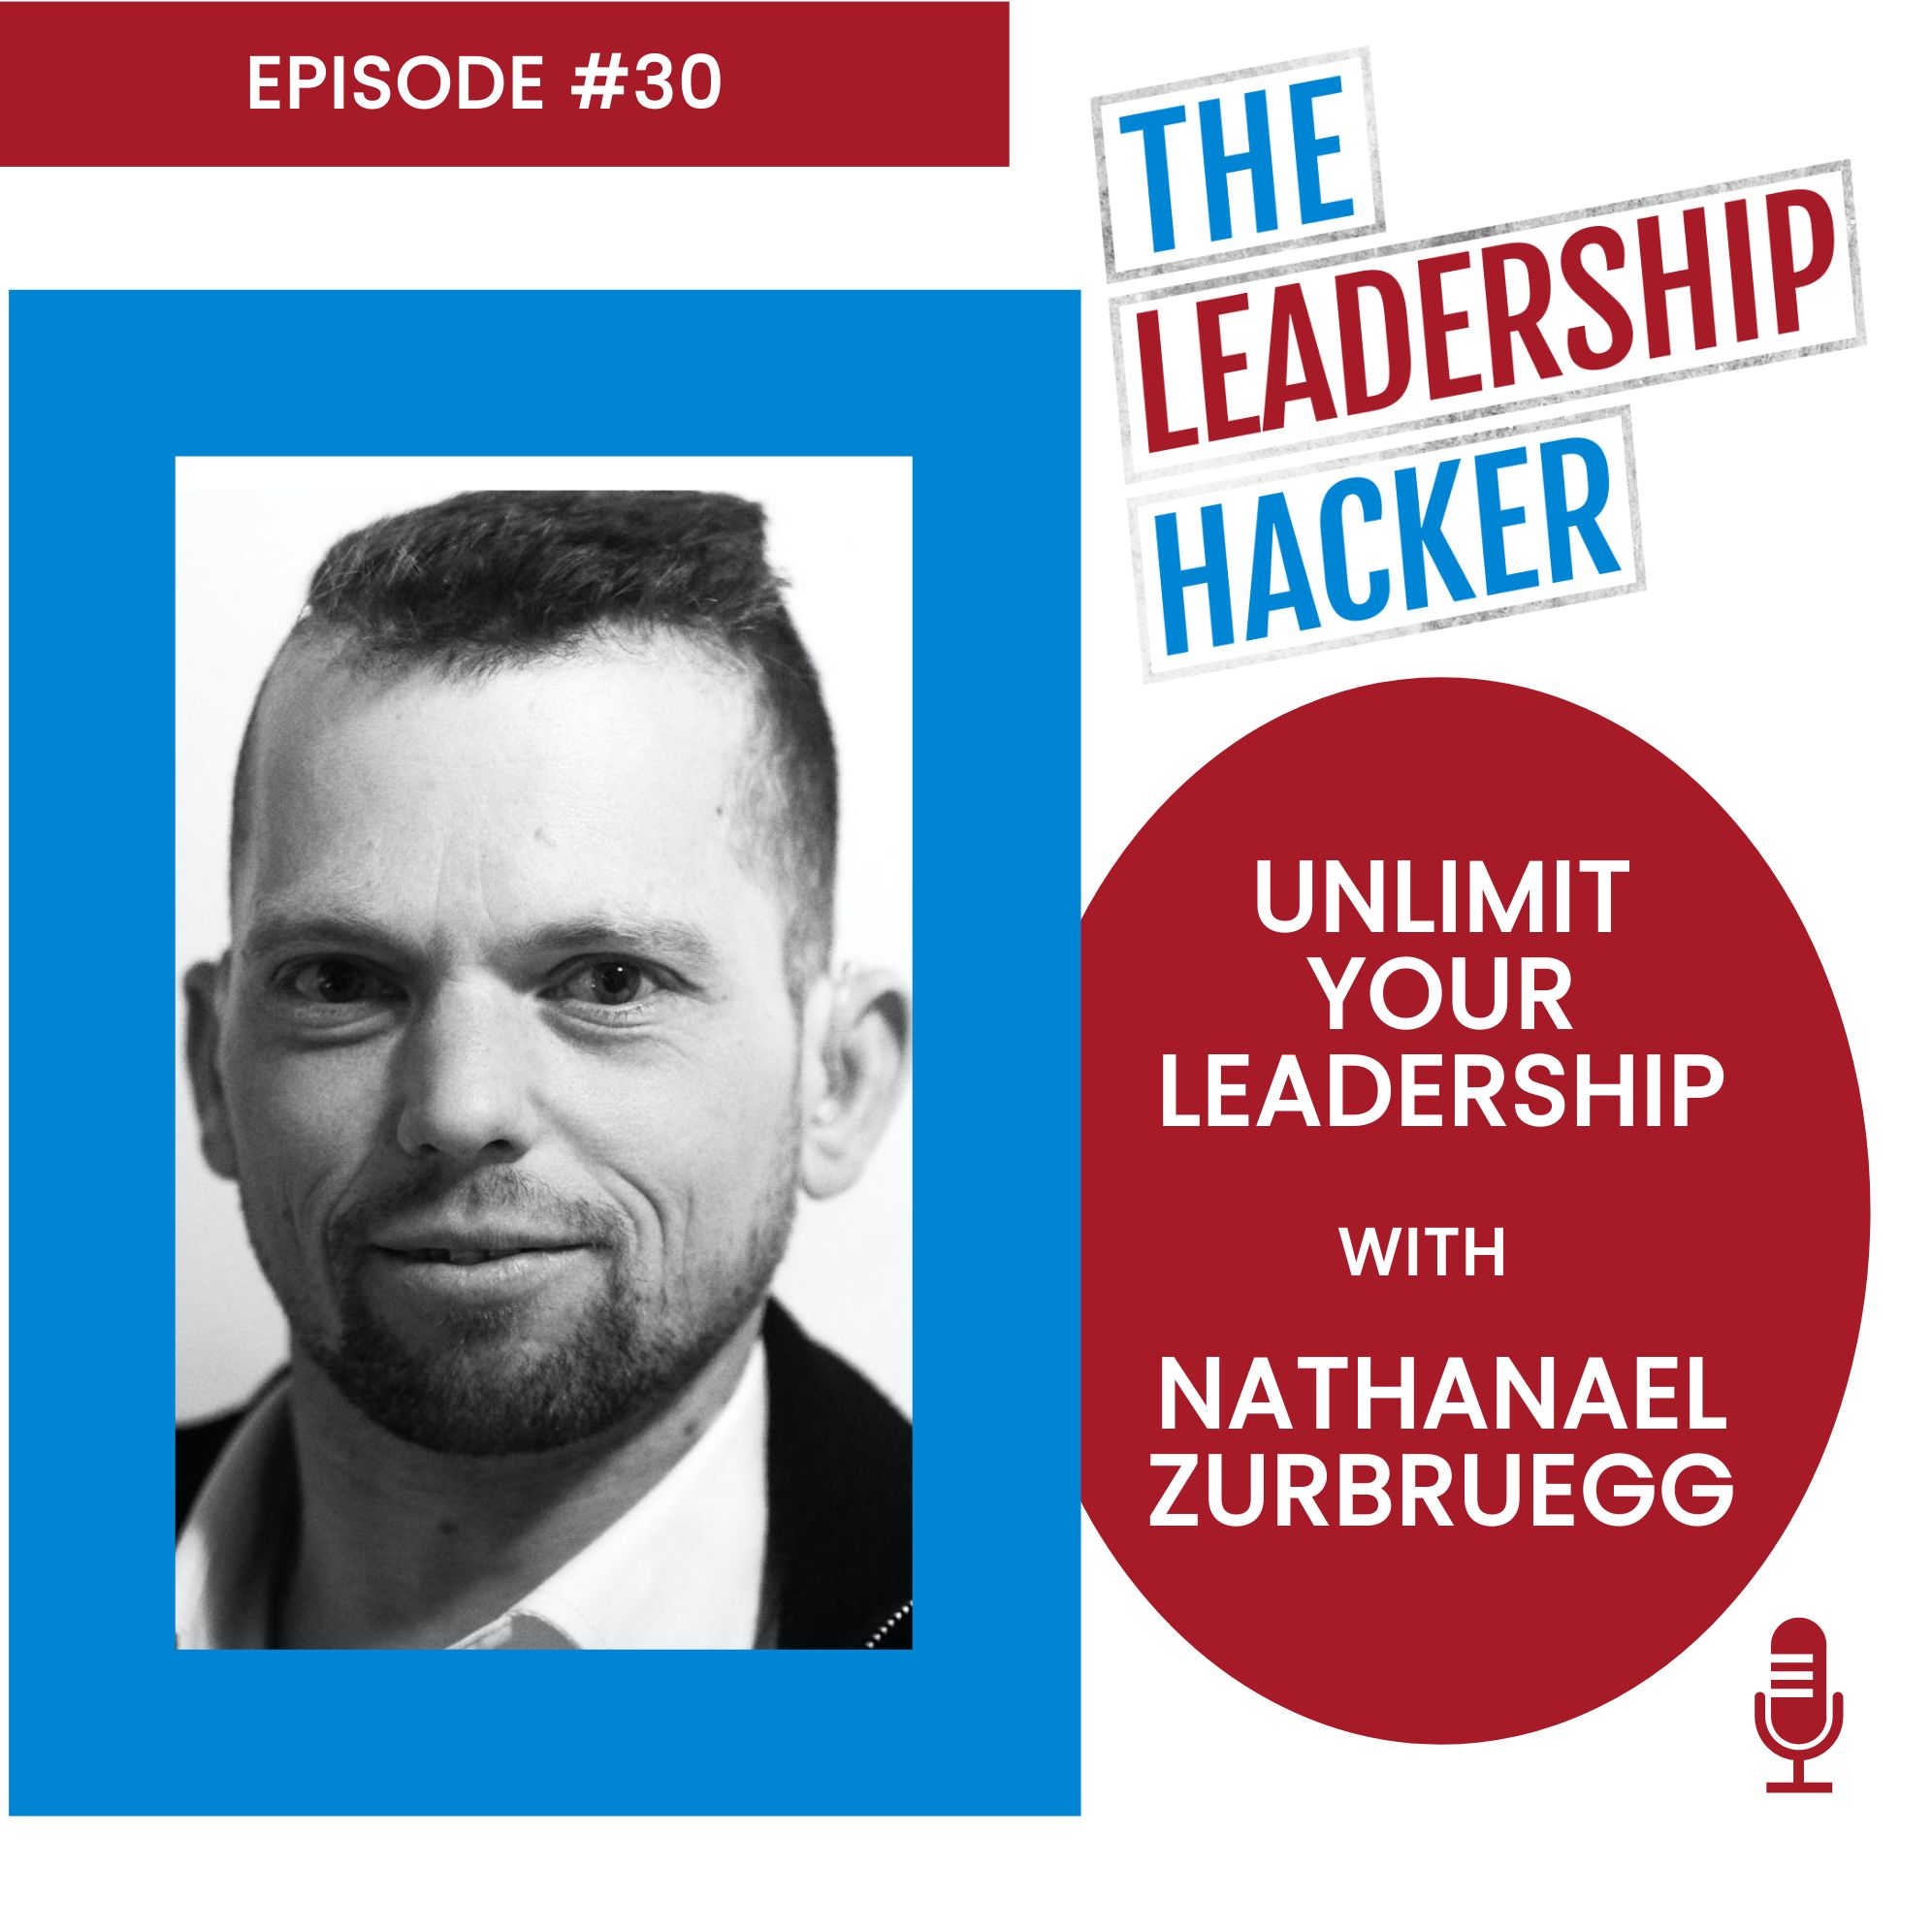 Unlimit Your Leadership with Nathanael Zurbruegg